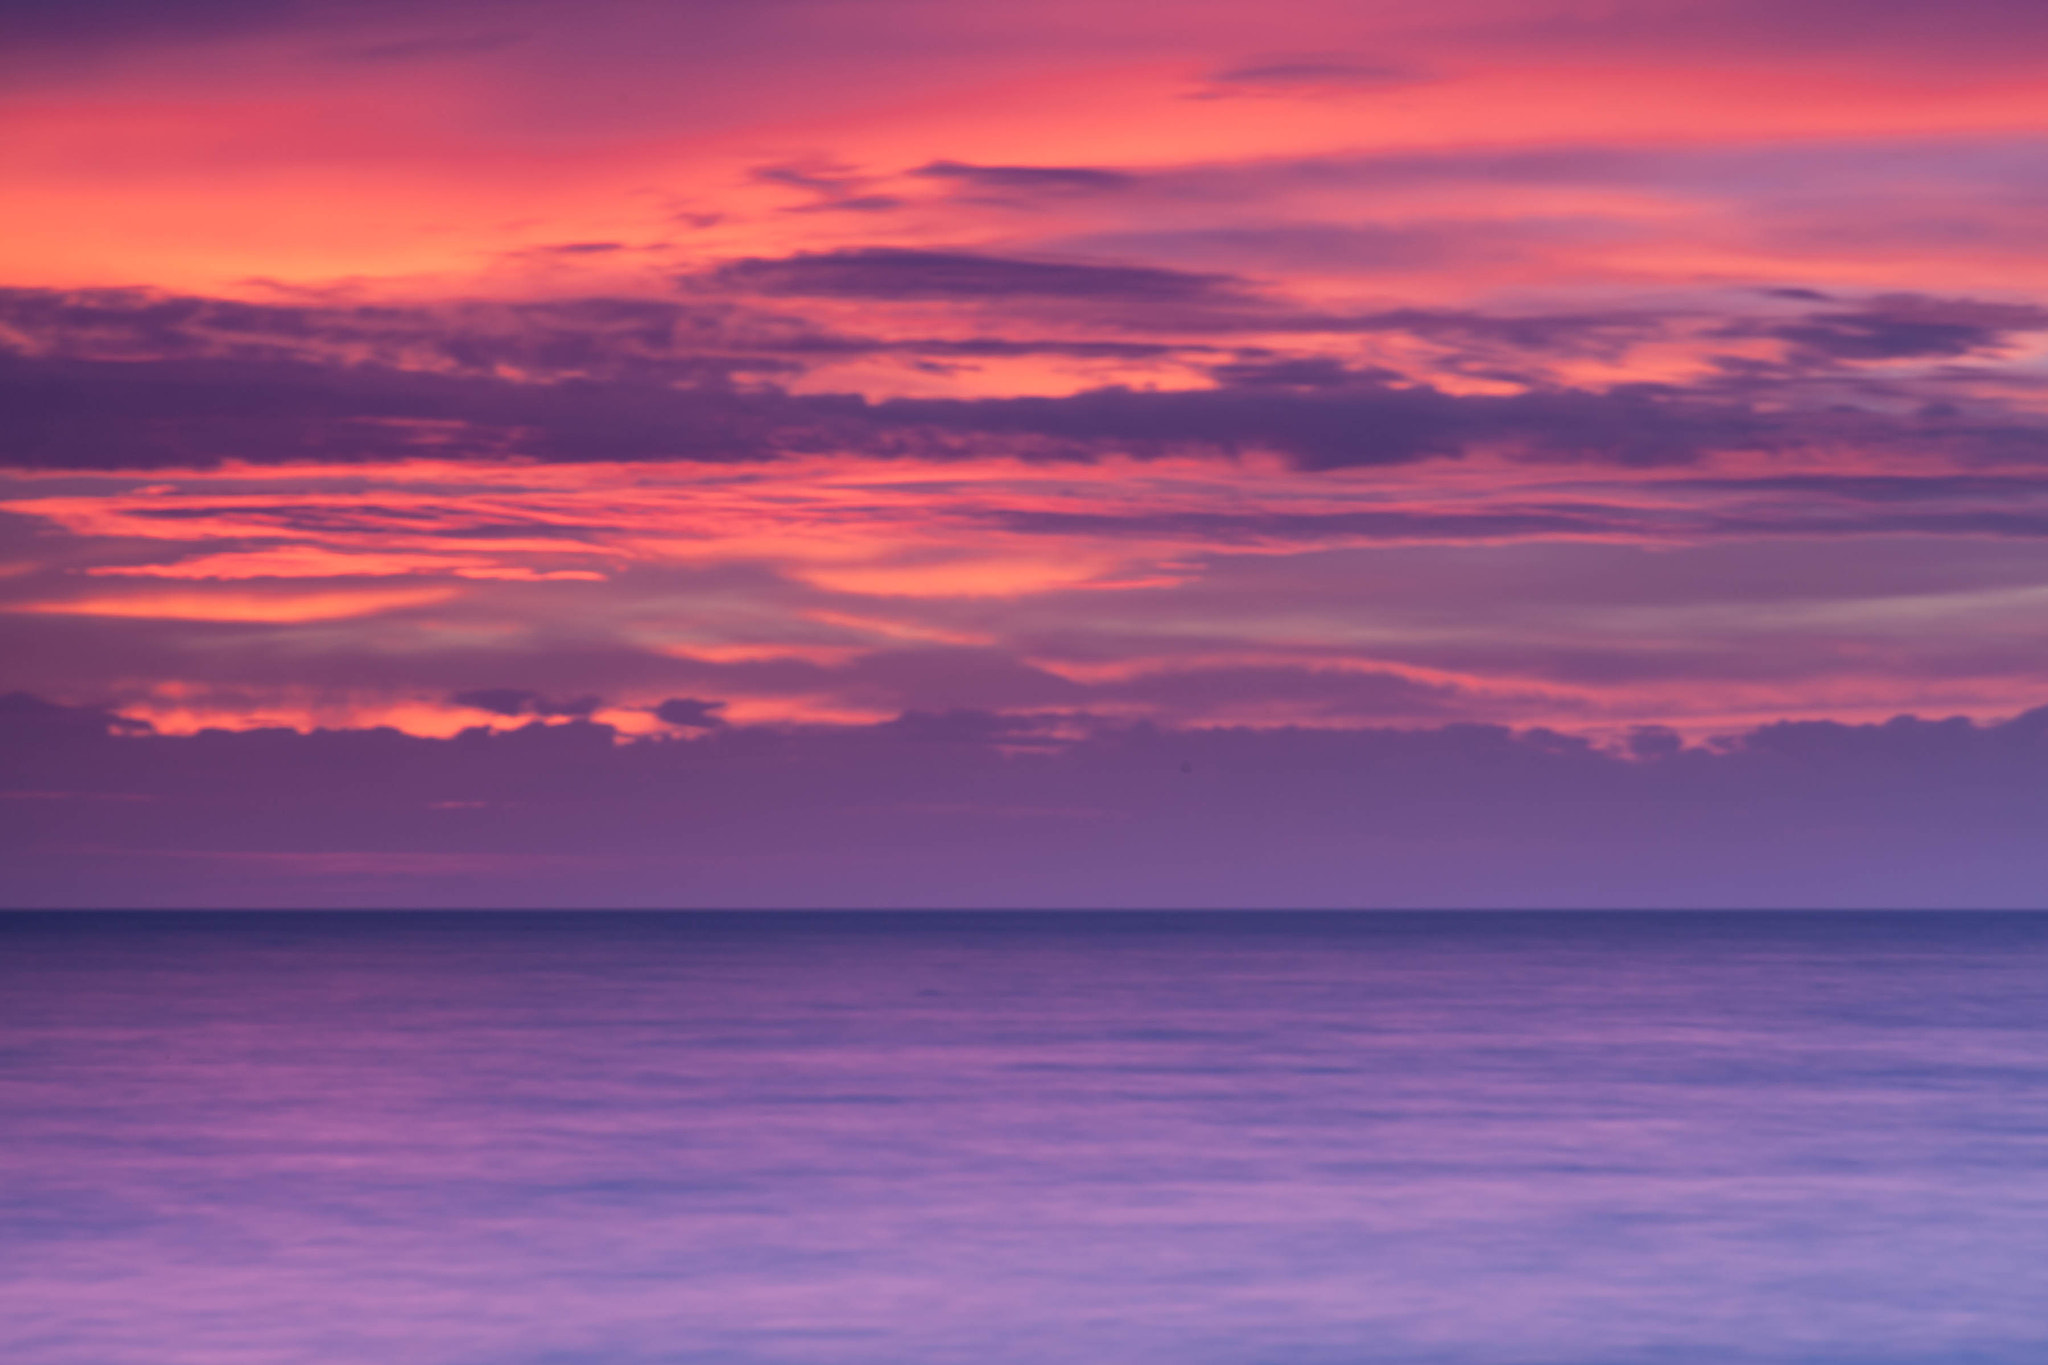 Photograph Sunrise Boggle Hole 70-200mm by Carl Mickleburgh on 500px